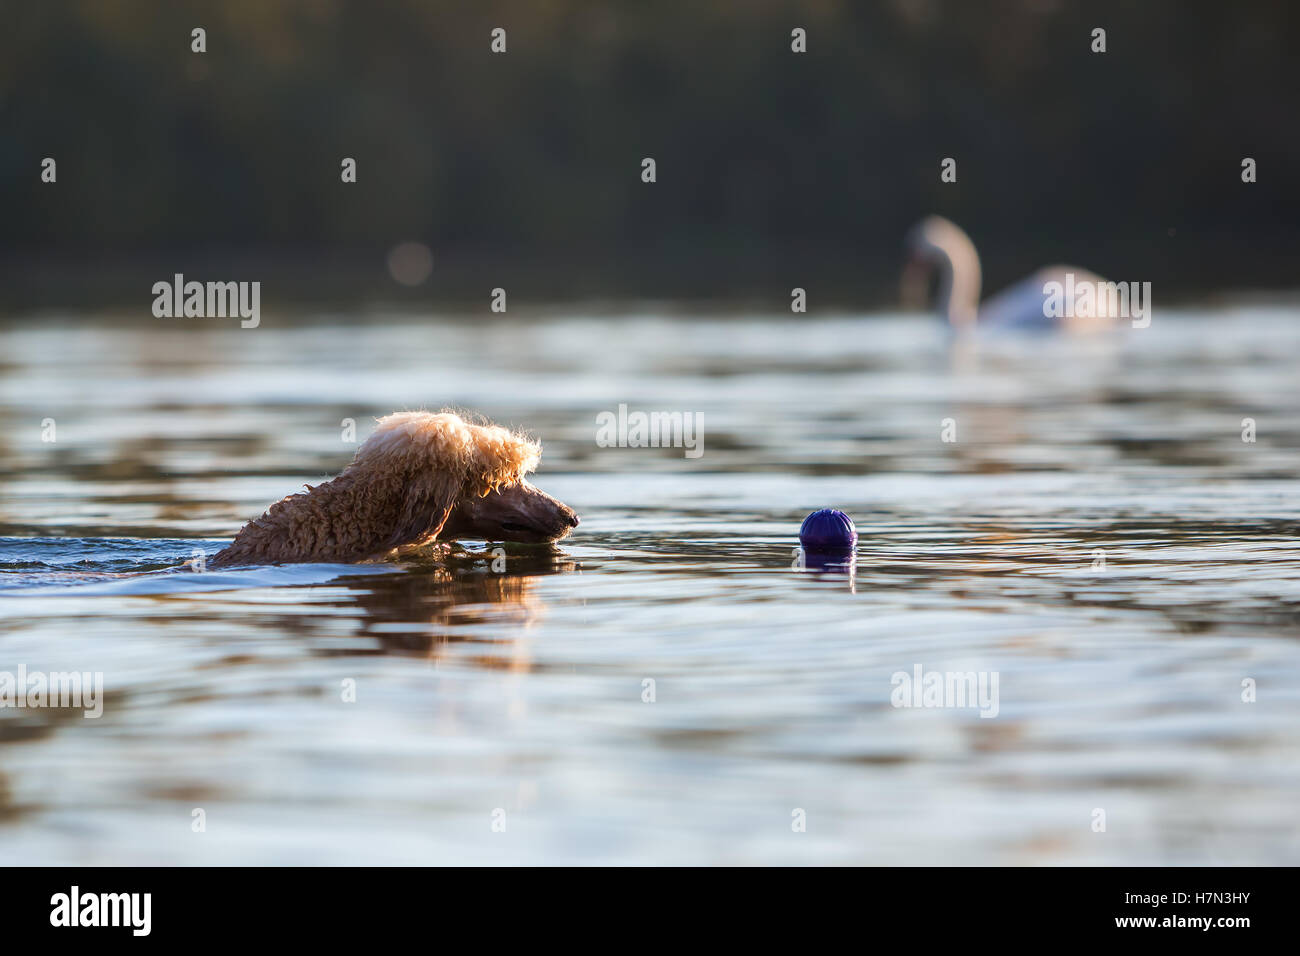 royal poodle swims for a ball in a lake - Stock Image